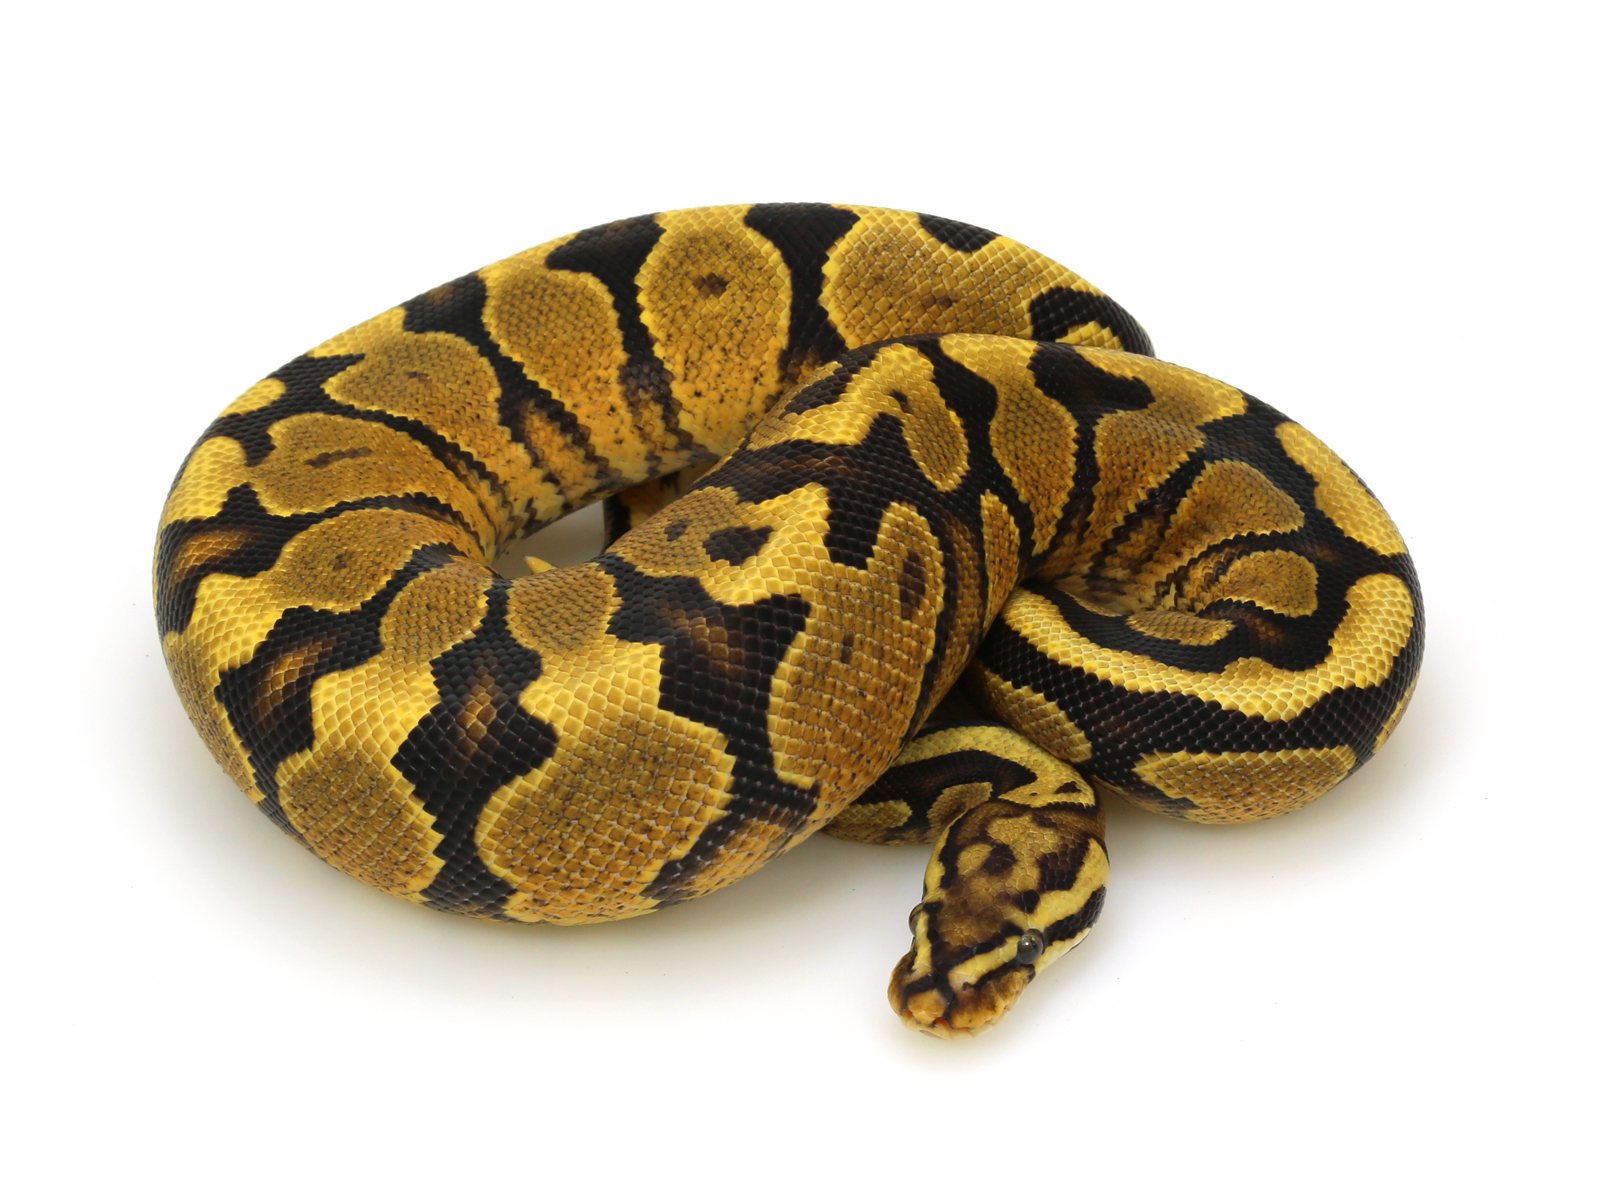 Spotnose Yellow Belly